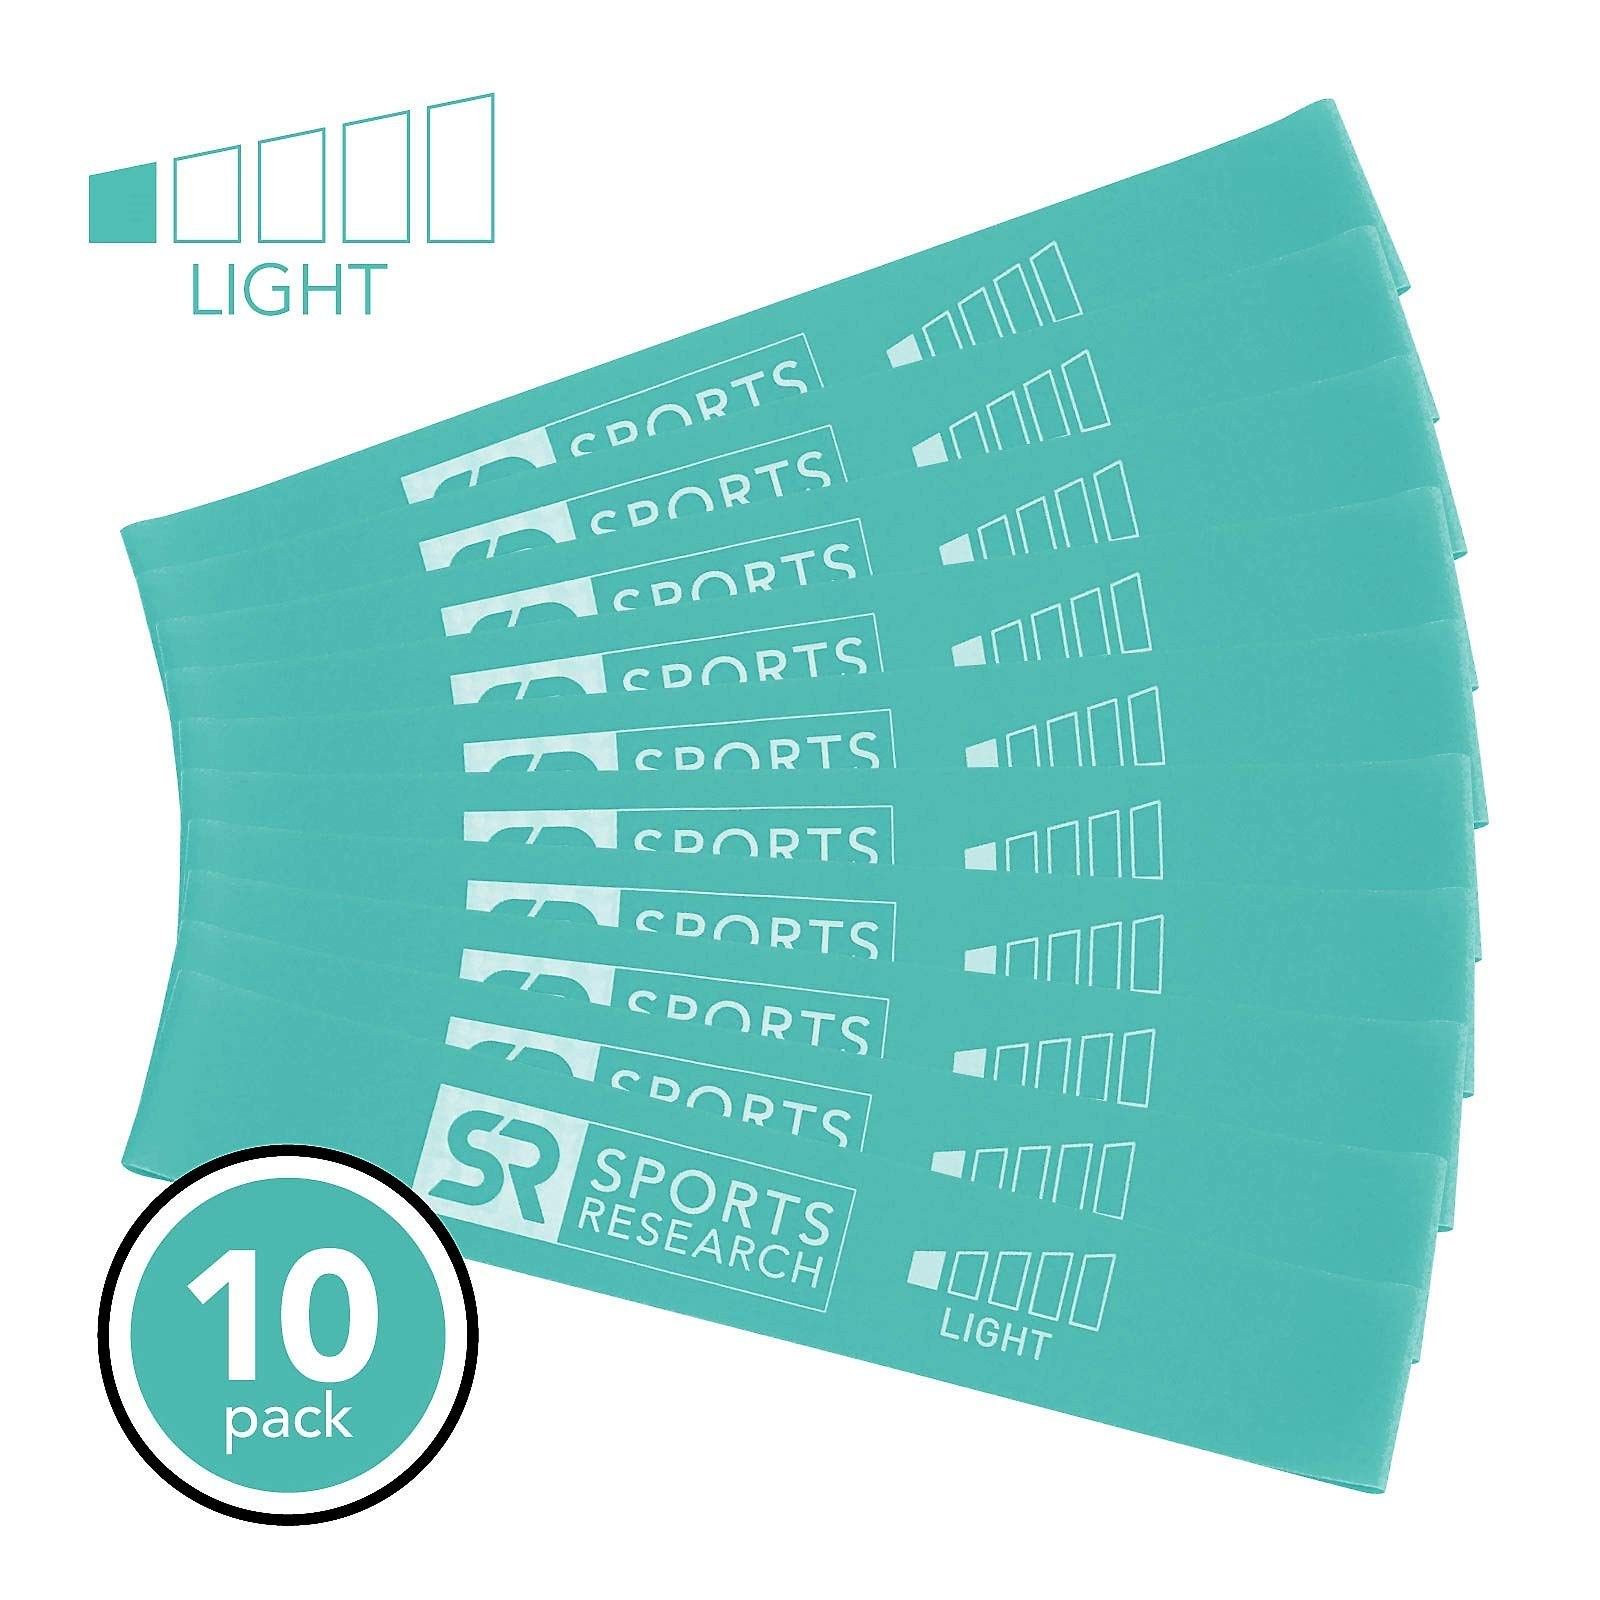 Sports Research Resistance Bands - 10 Pack (Teal) Light Resistance | Training, Yoga and Physical Therapy Mini Loop Bands | Includes Free Mesh Carrying Bag (10 Pack (Light))